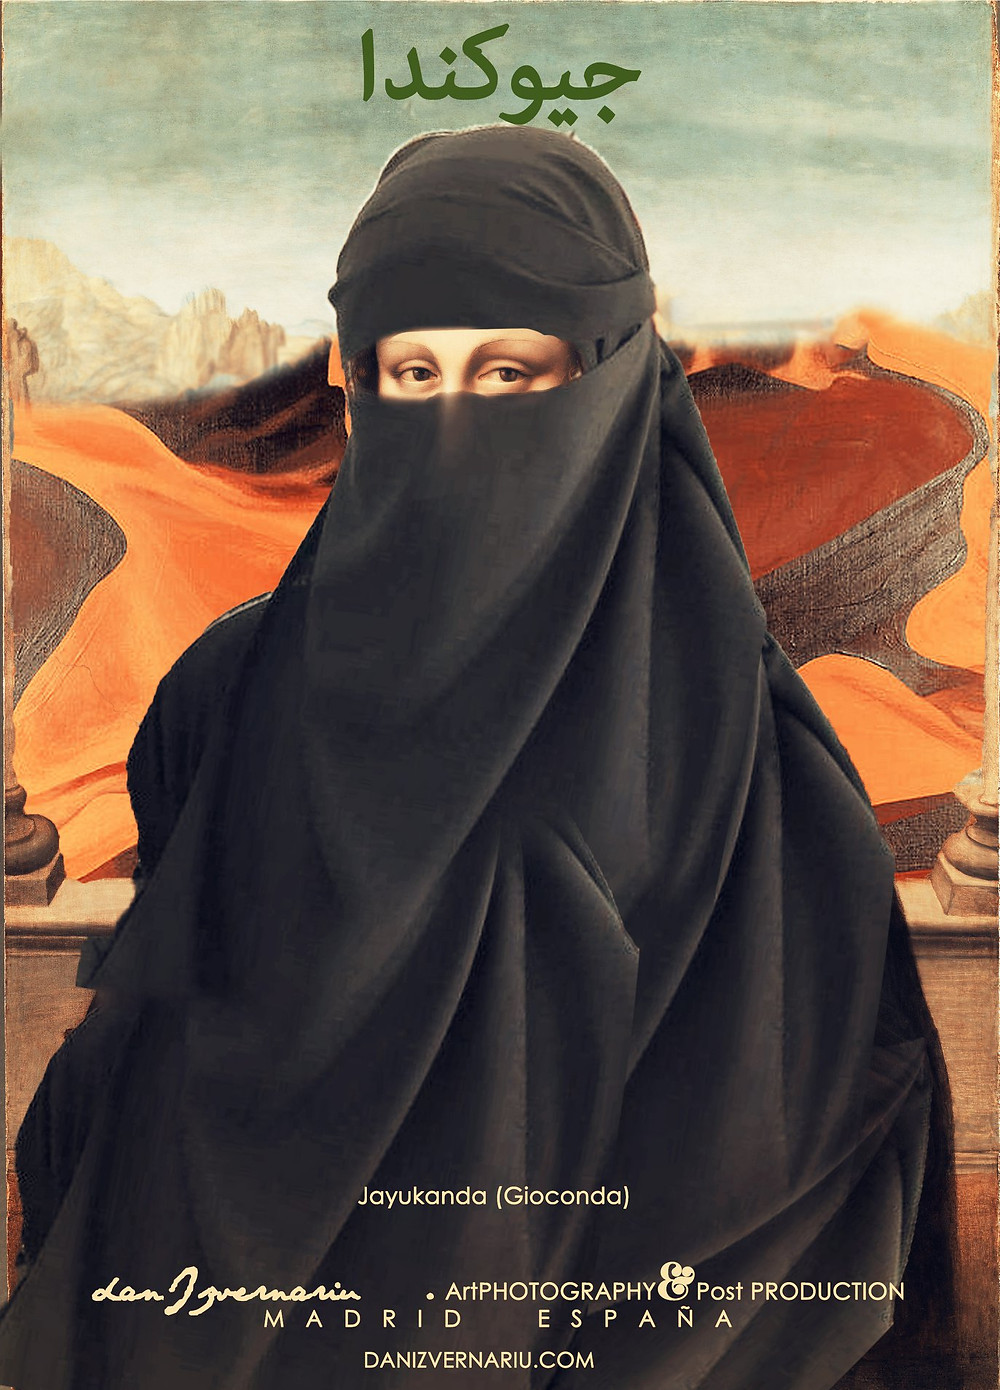 Gioconda islamic portrait by Dan Izvernariu, Madrid, España 2019